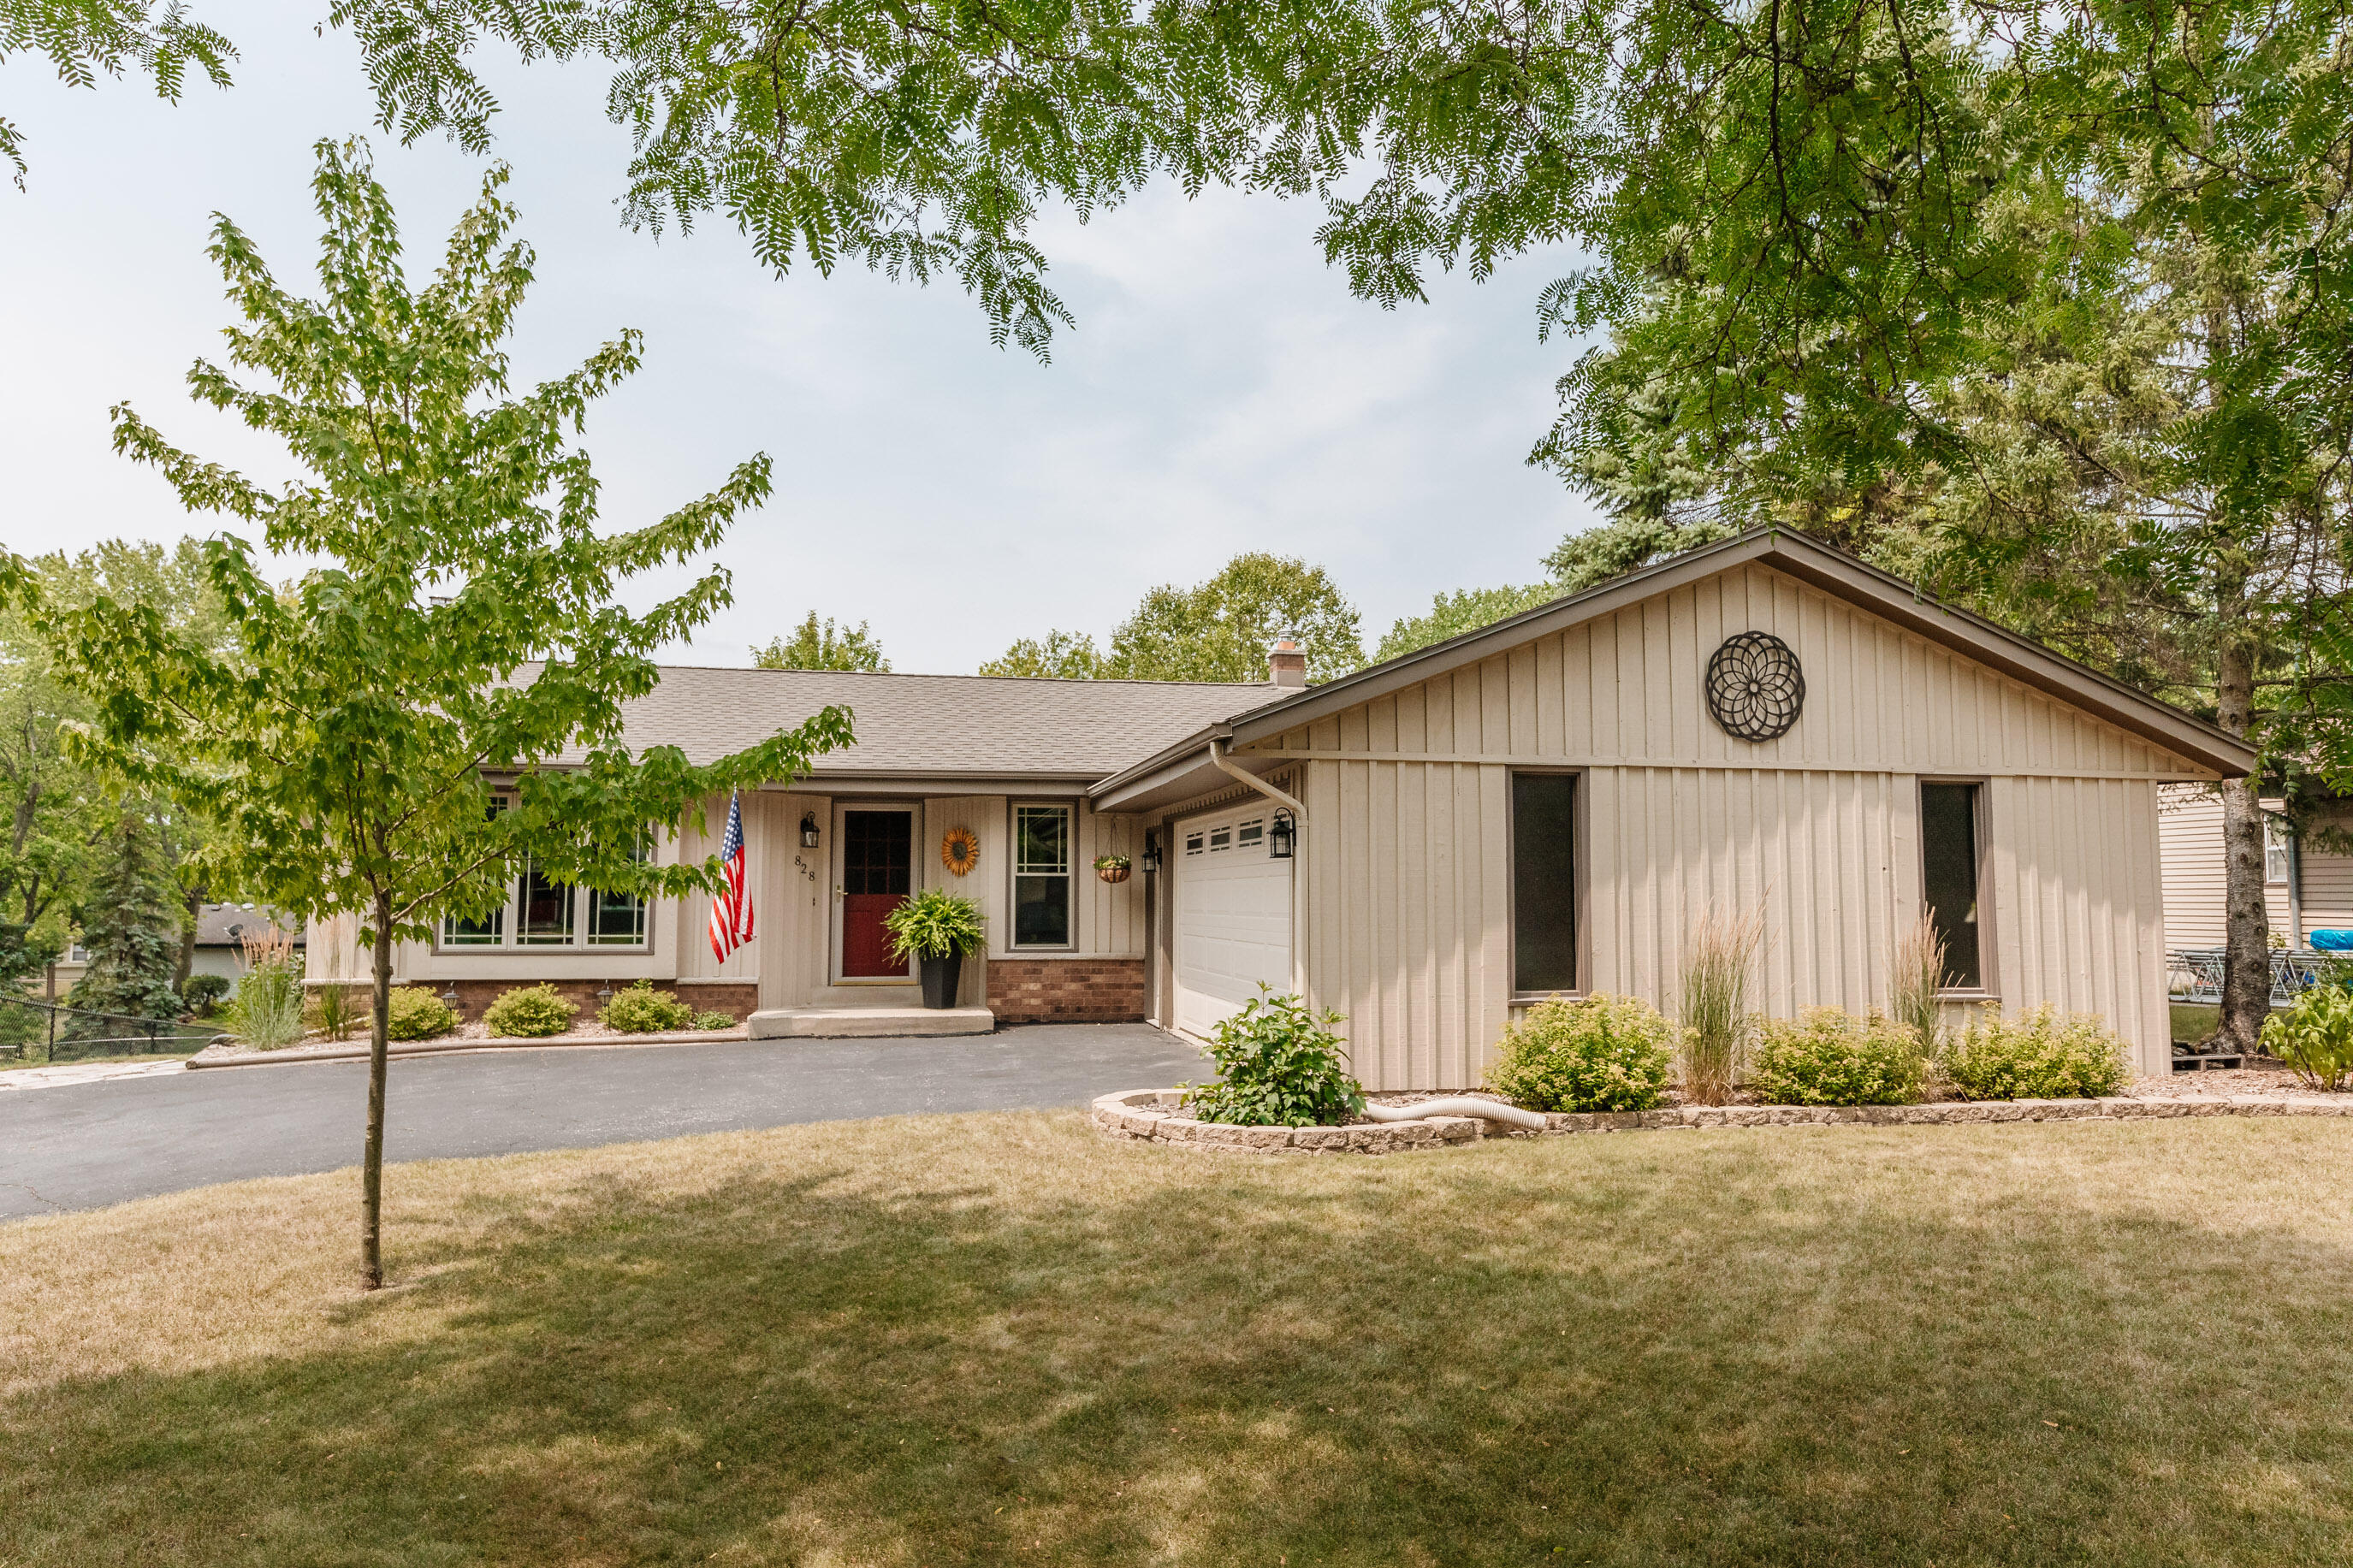 828 Briar Hill Dr, Waukesha, Wisconsin 53188, 4 Bedrooms Bedrooms, 7 Rooms Rooms,2 BathroomsBathrooms,Single-Family,For Sale,Briar Hill Dr,1755123